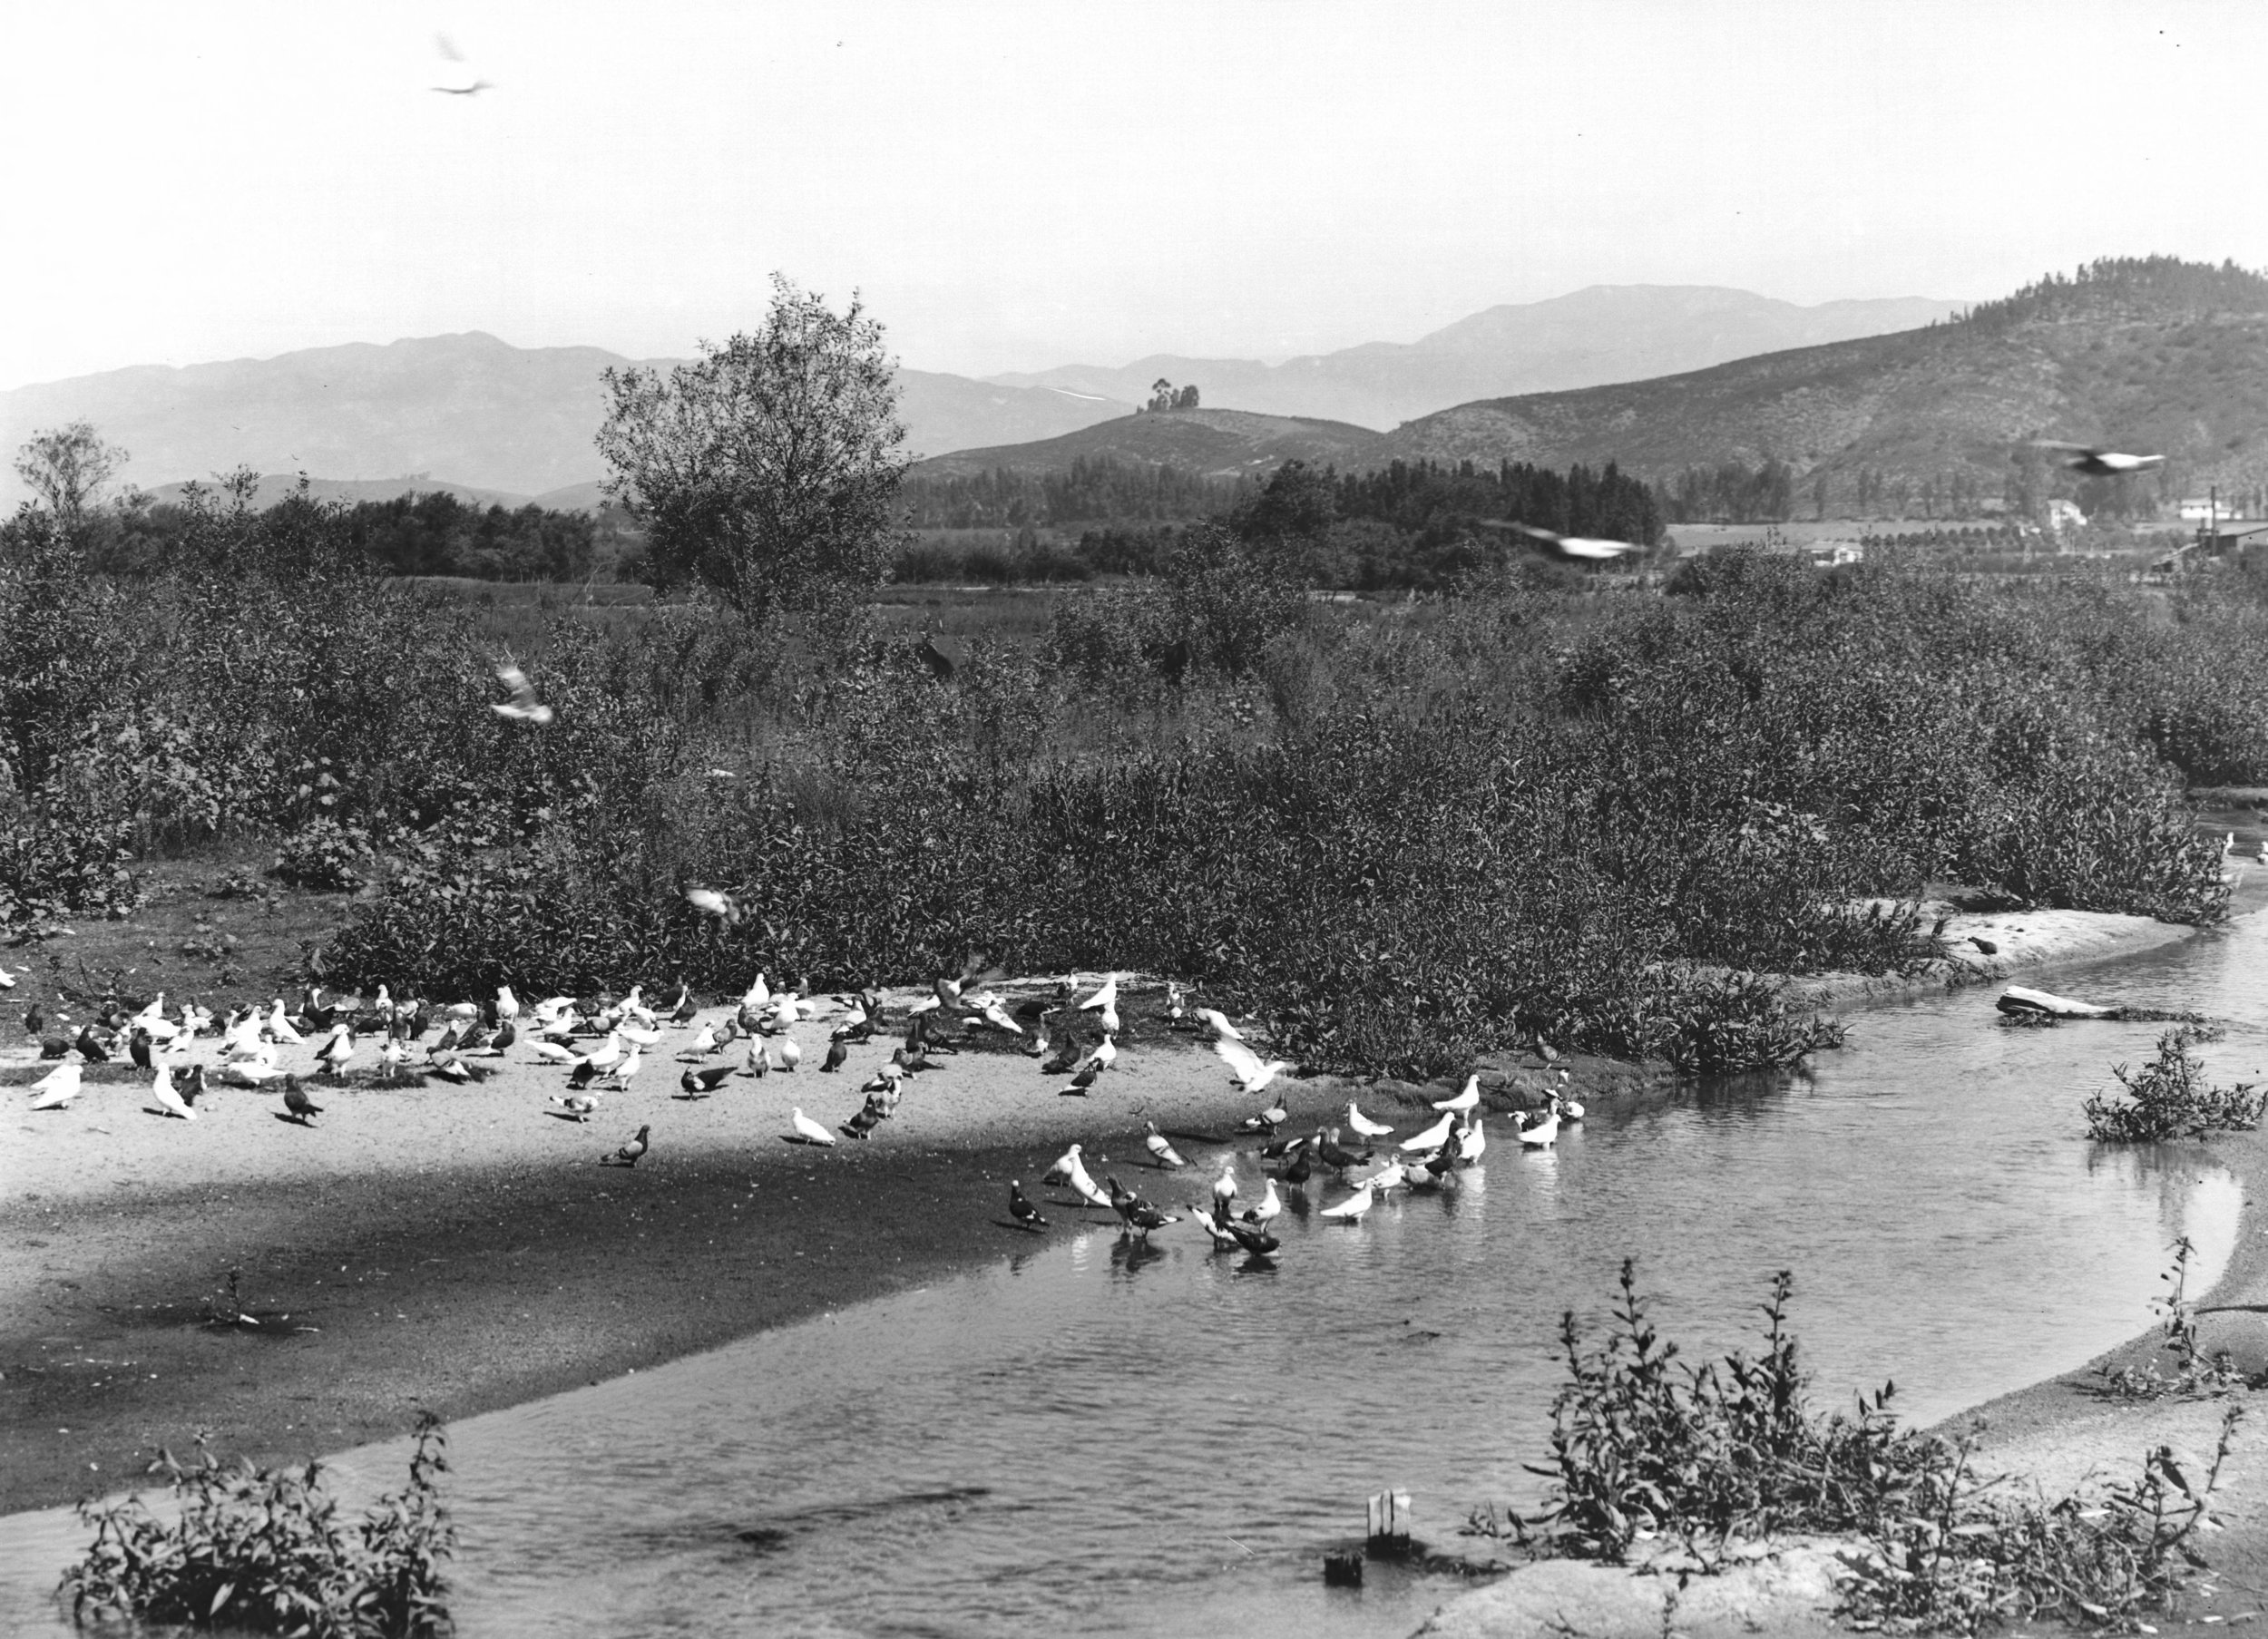 Pigeons in the Los Angeles River on a pigeon ranch. Native shrubs and bushes along the shore. Taken near Glassell Park in the western Cypress Park district of Los Angeles, just past the Riverside bridge at the junction of Verdugo Road and San Fernando Road, ca. 1900 [public domain].